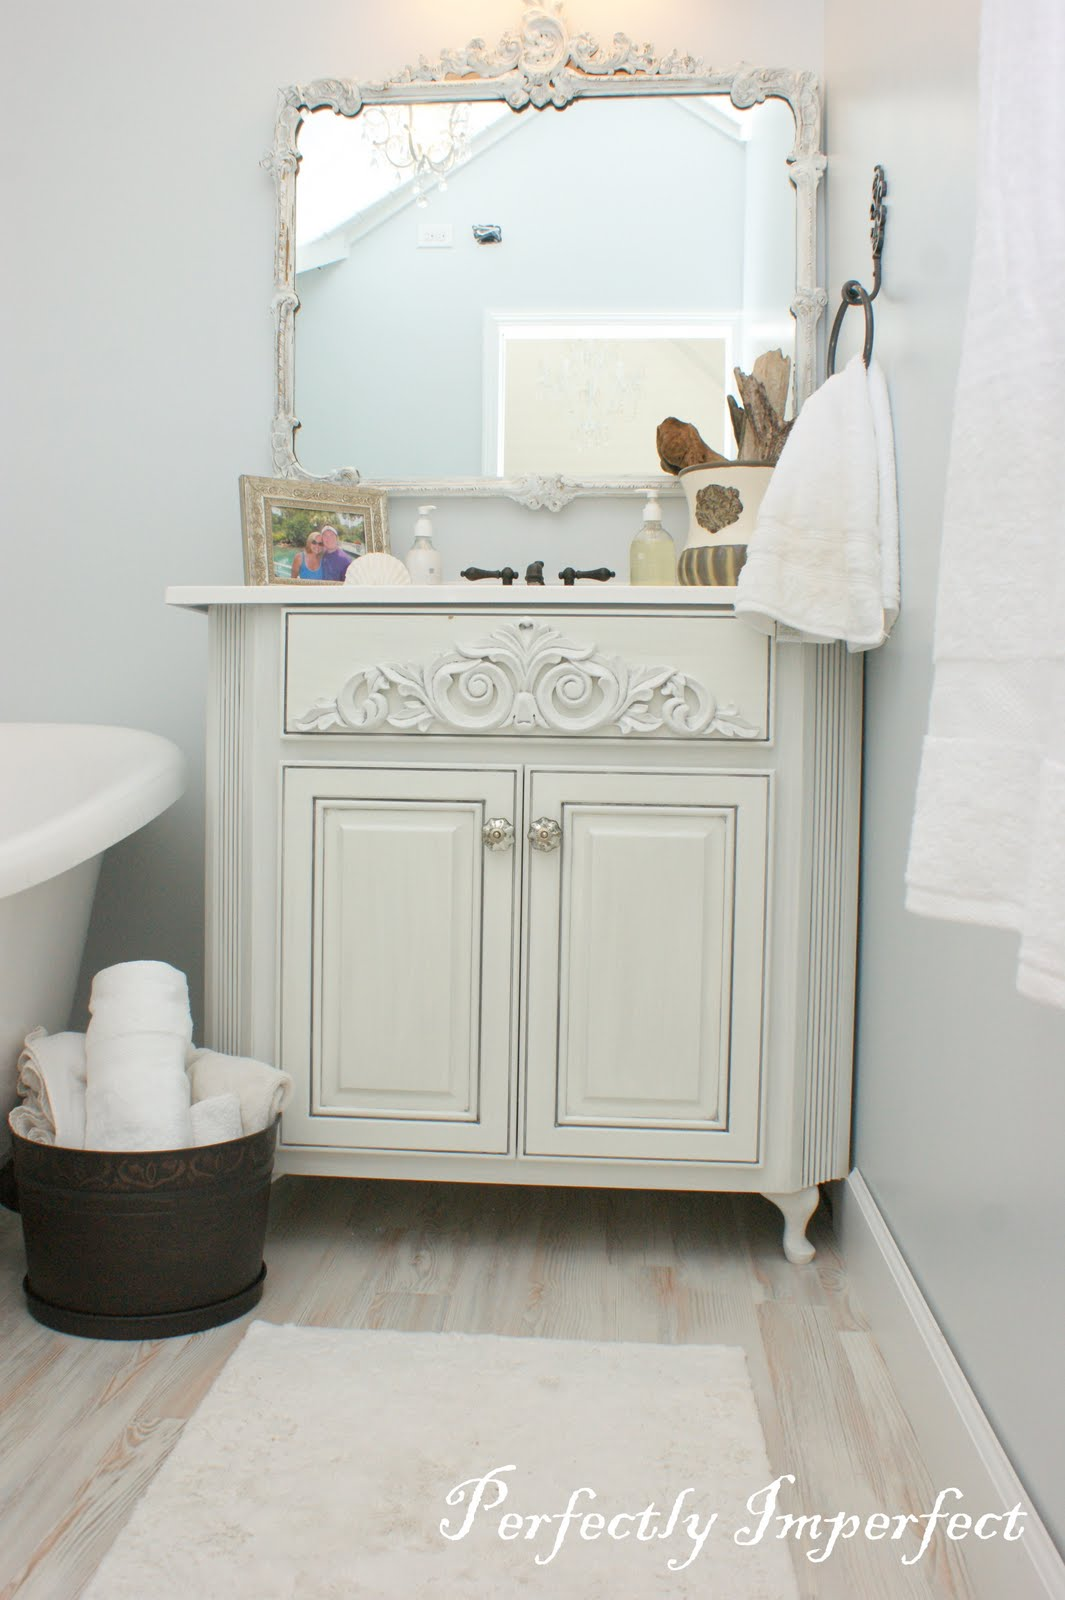 Writing Room Bath Reveal   Perfectly Imperfect™ Blog